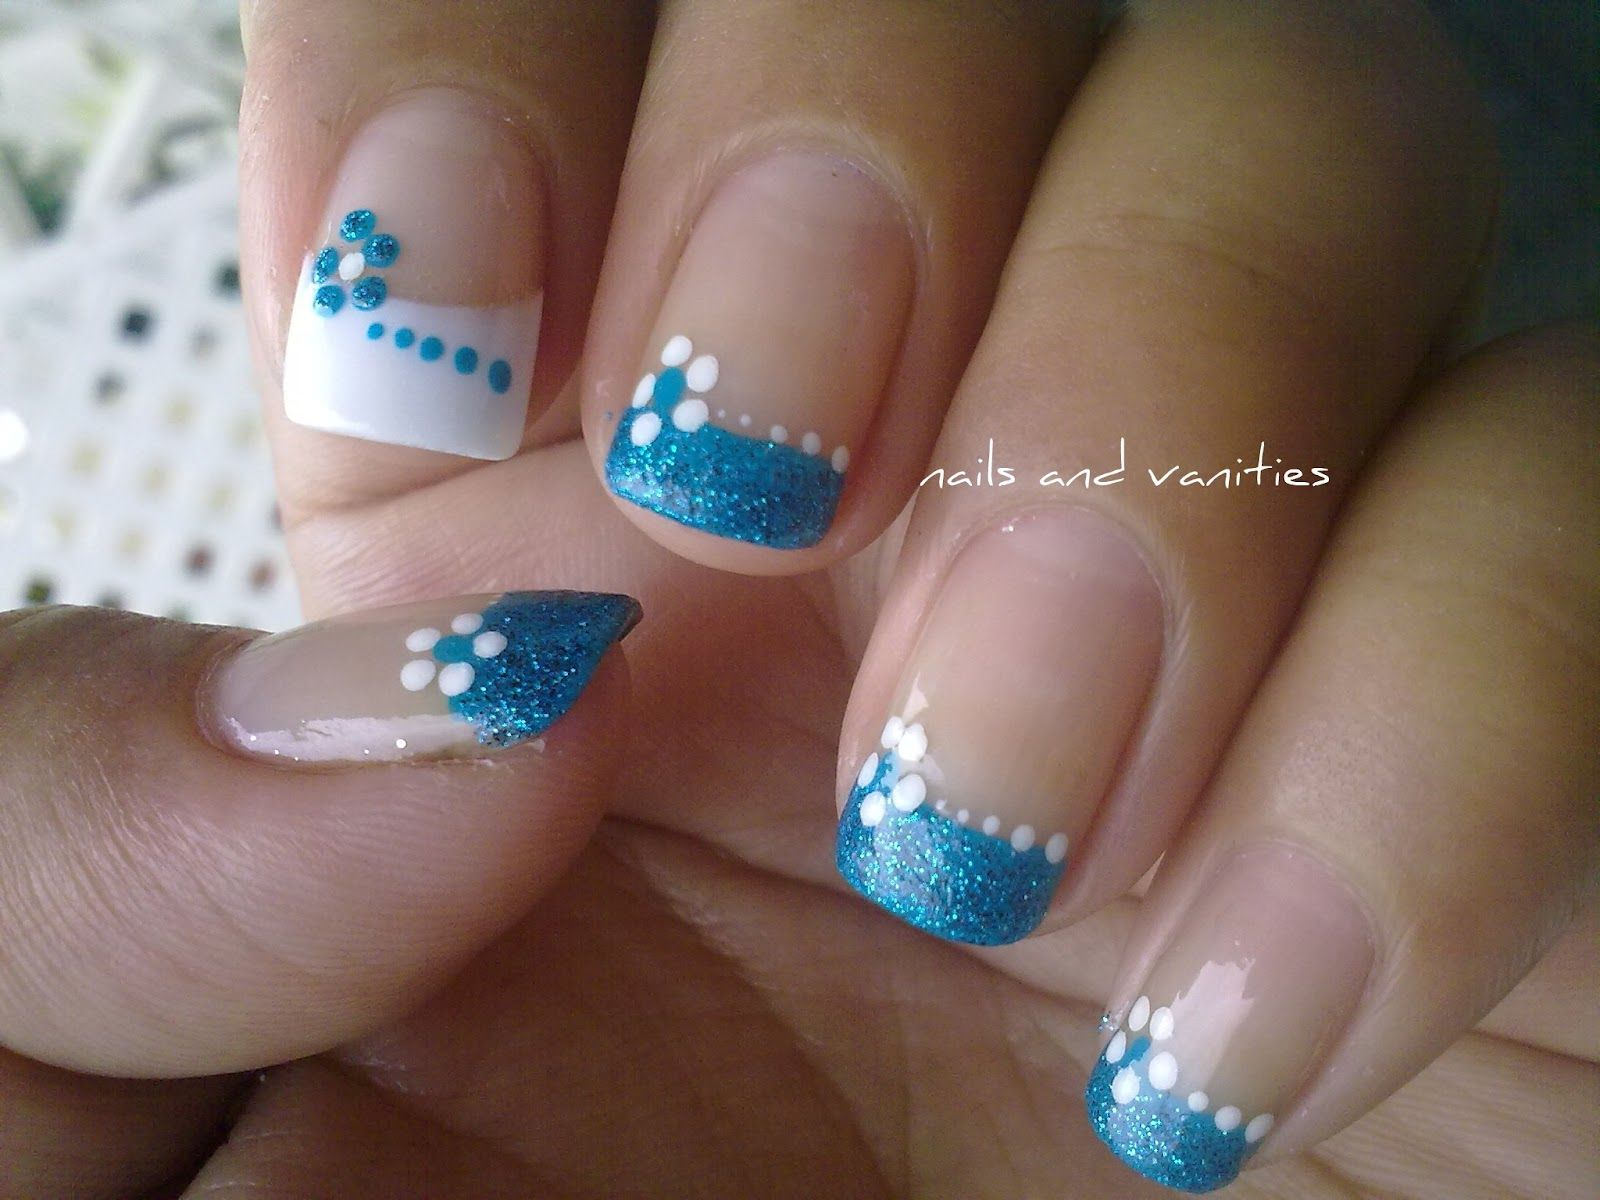 Colored french nail design - Blue Blowers White Dots French Tips